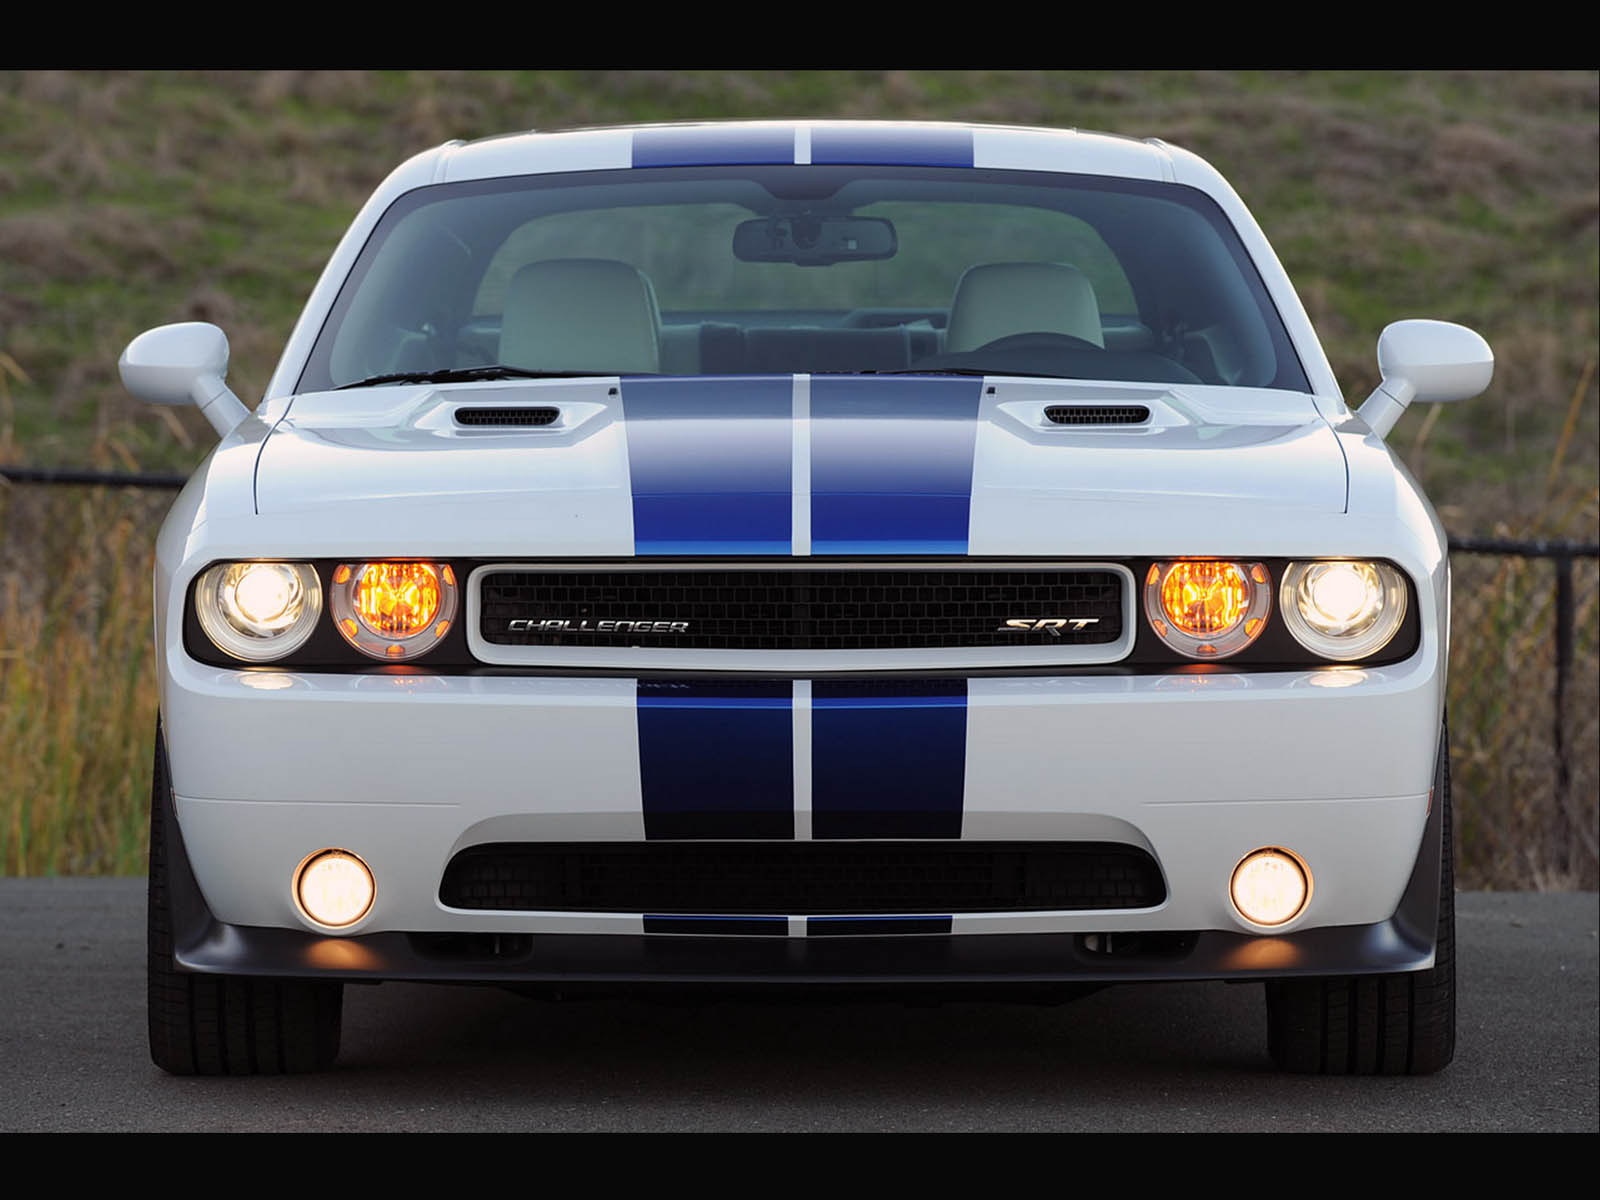 wallpaper: Dodge Challenger SRT8 Car